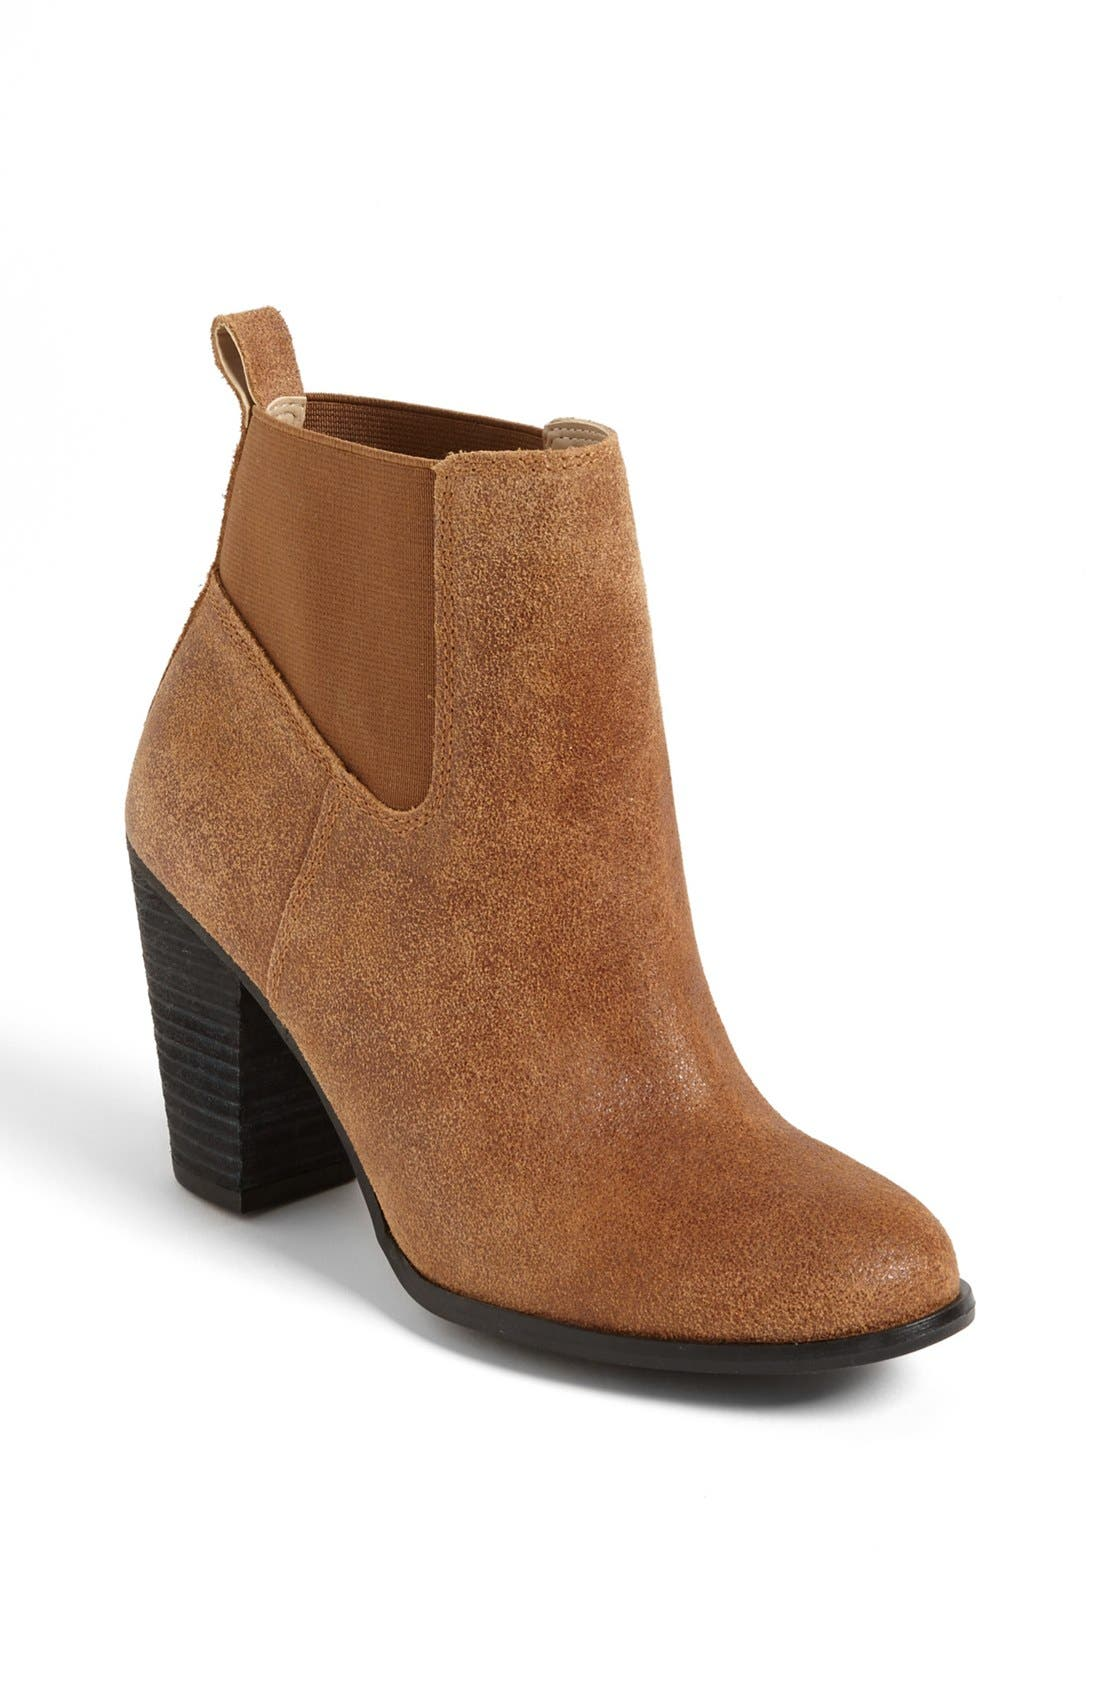 Main Image - Julianne Hough for Sole Society 'Giuliana' Bootie